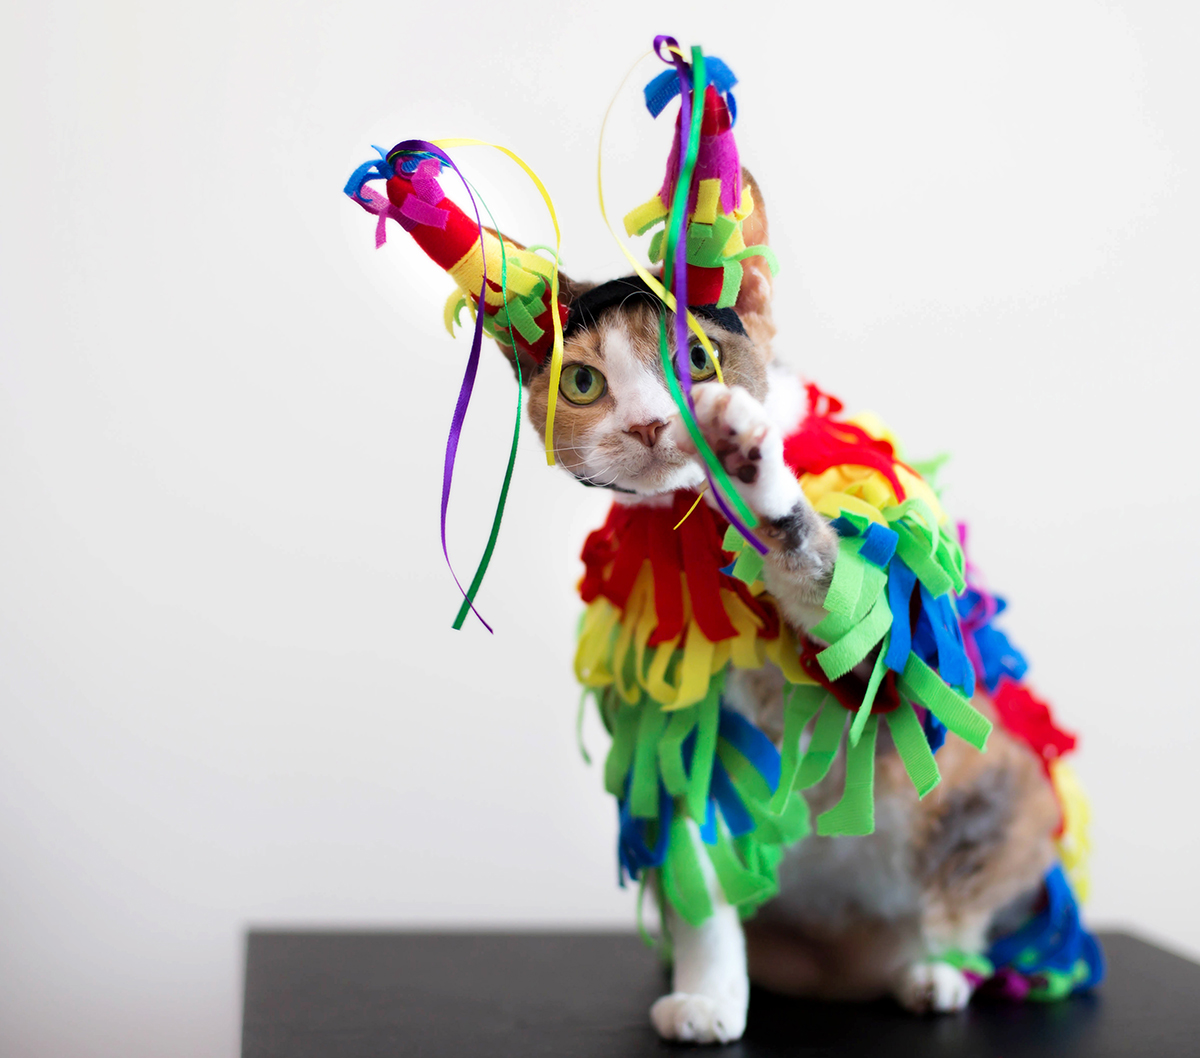 daisy is happy with her pinata costume - petmeds® pet health blog